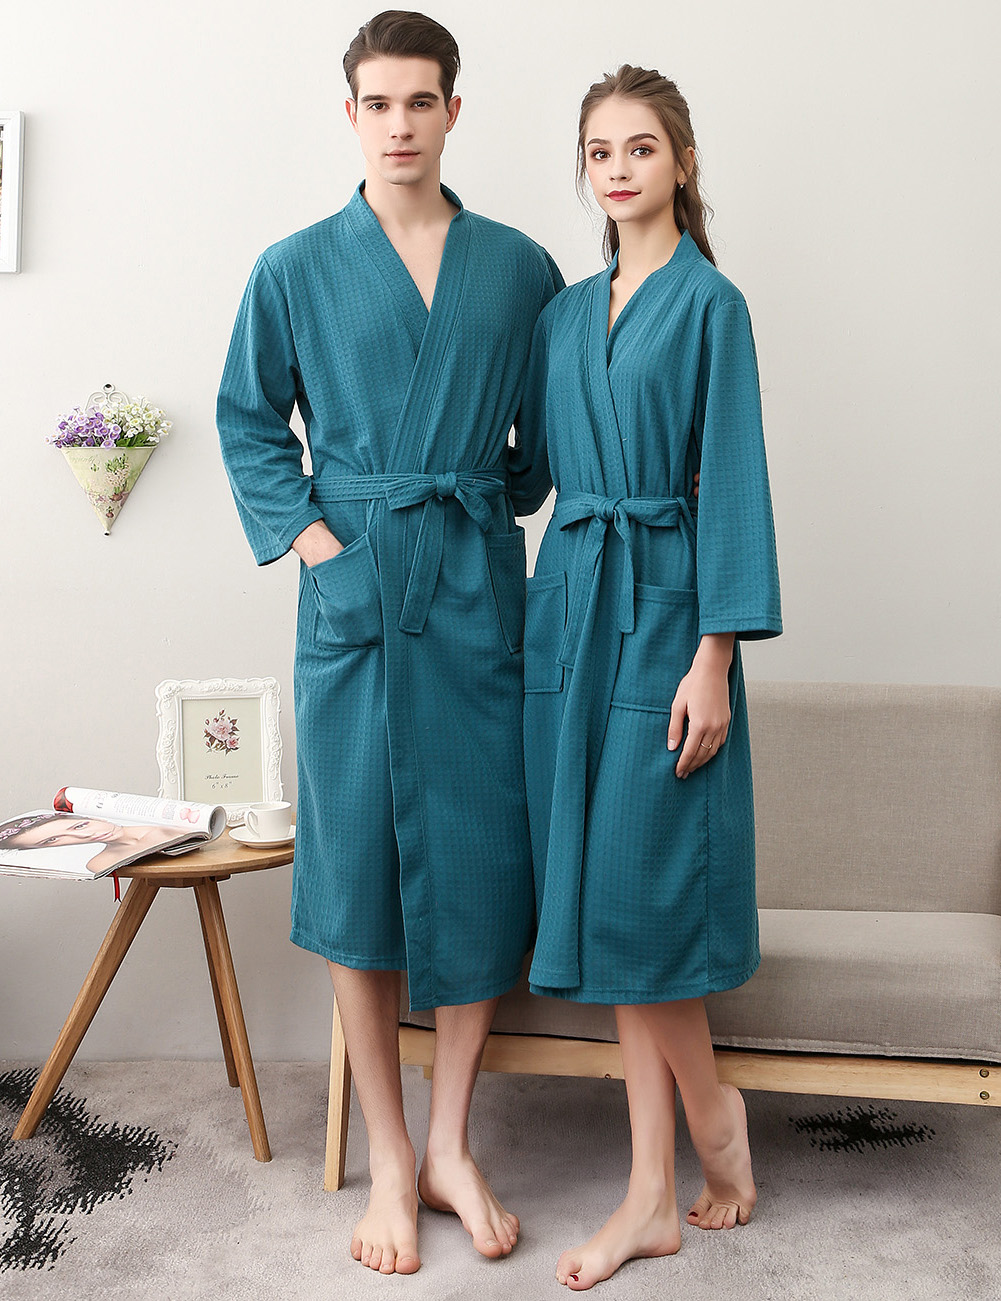 //cdn.affectcloud.com/feelingirldress/upload/imgs/2019-06-29/SY190097-GN5/SY190097-GN5-4.jpg